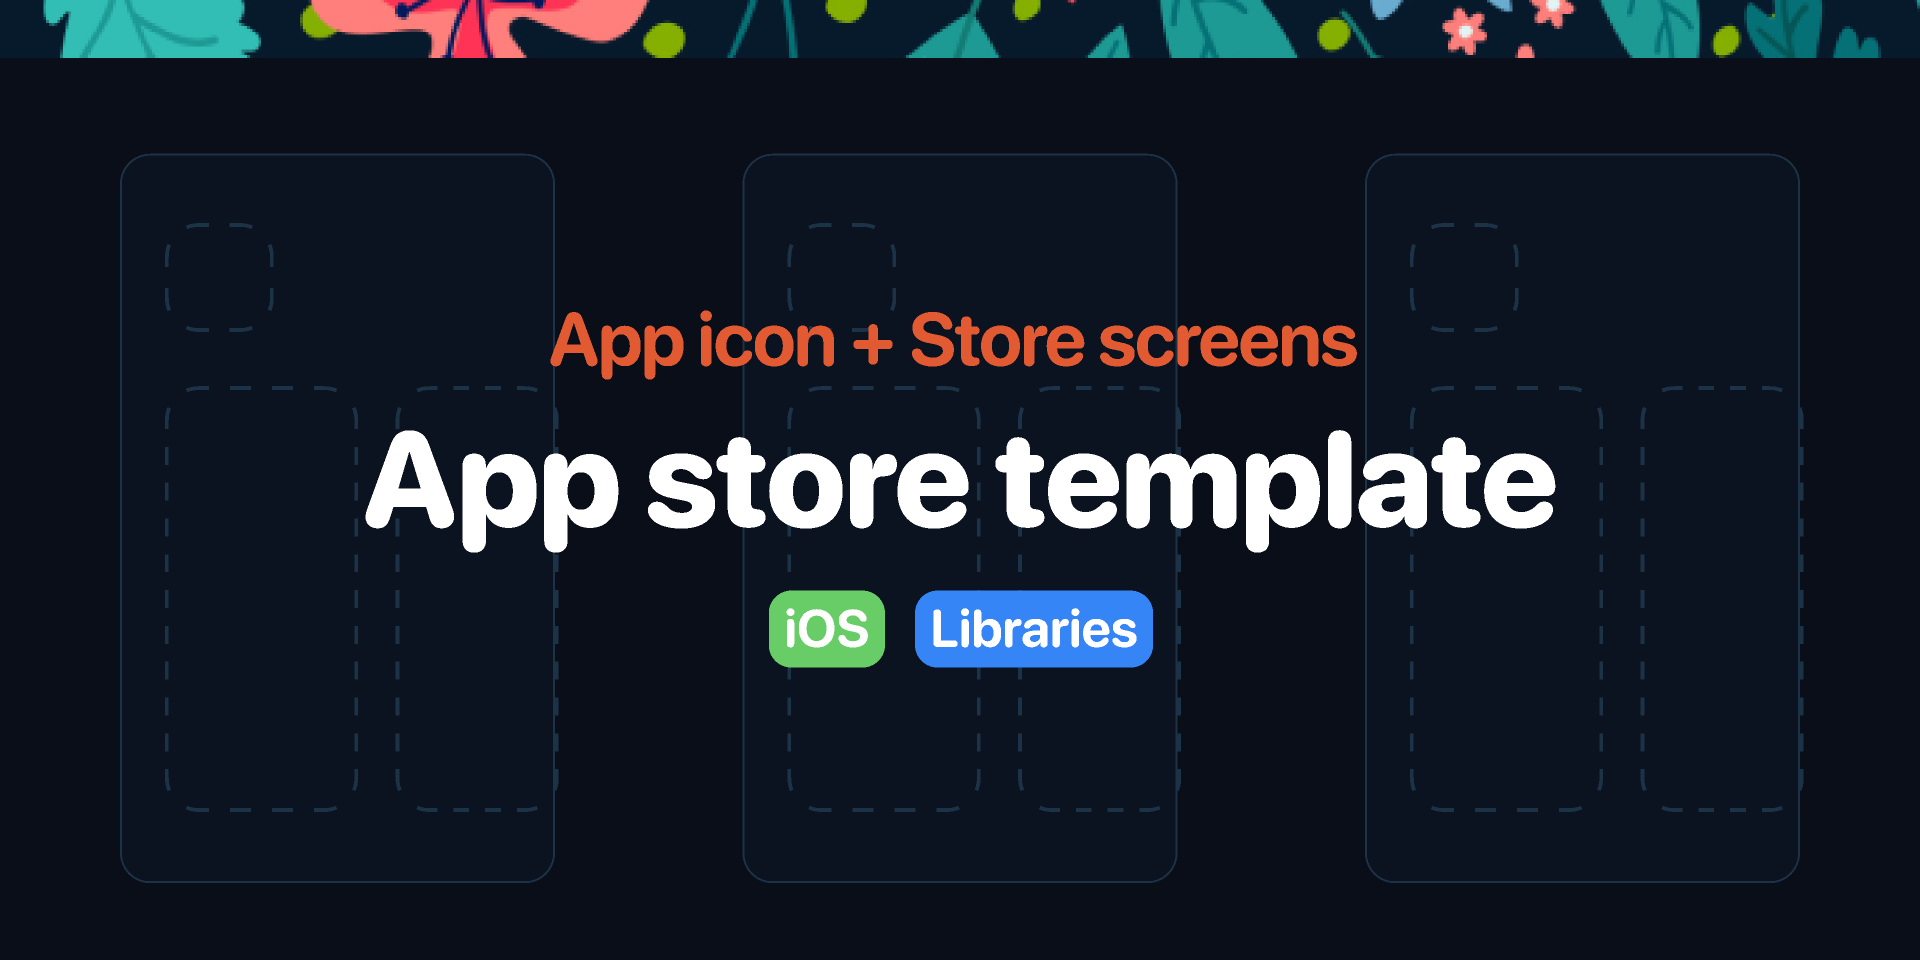 Free figma App store template - App icon & Store screens